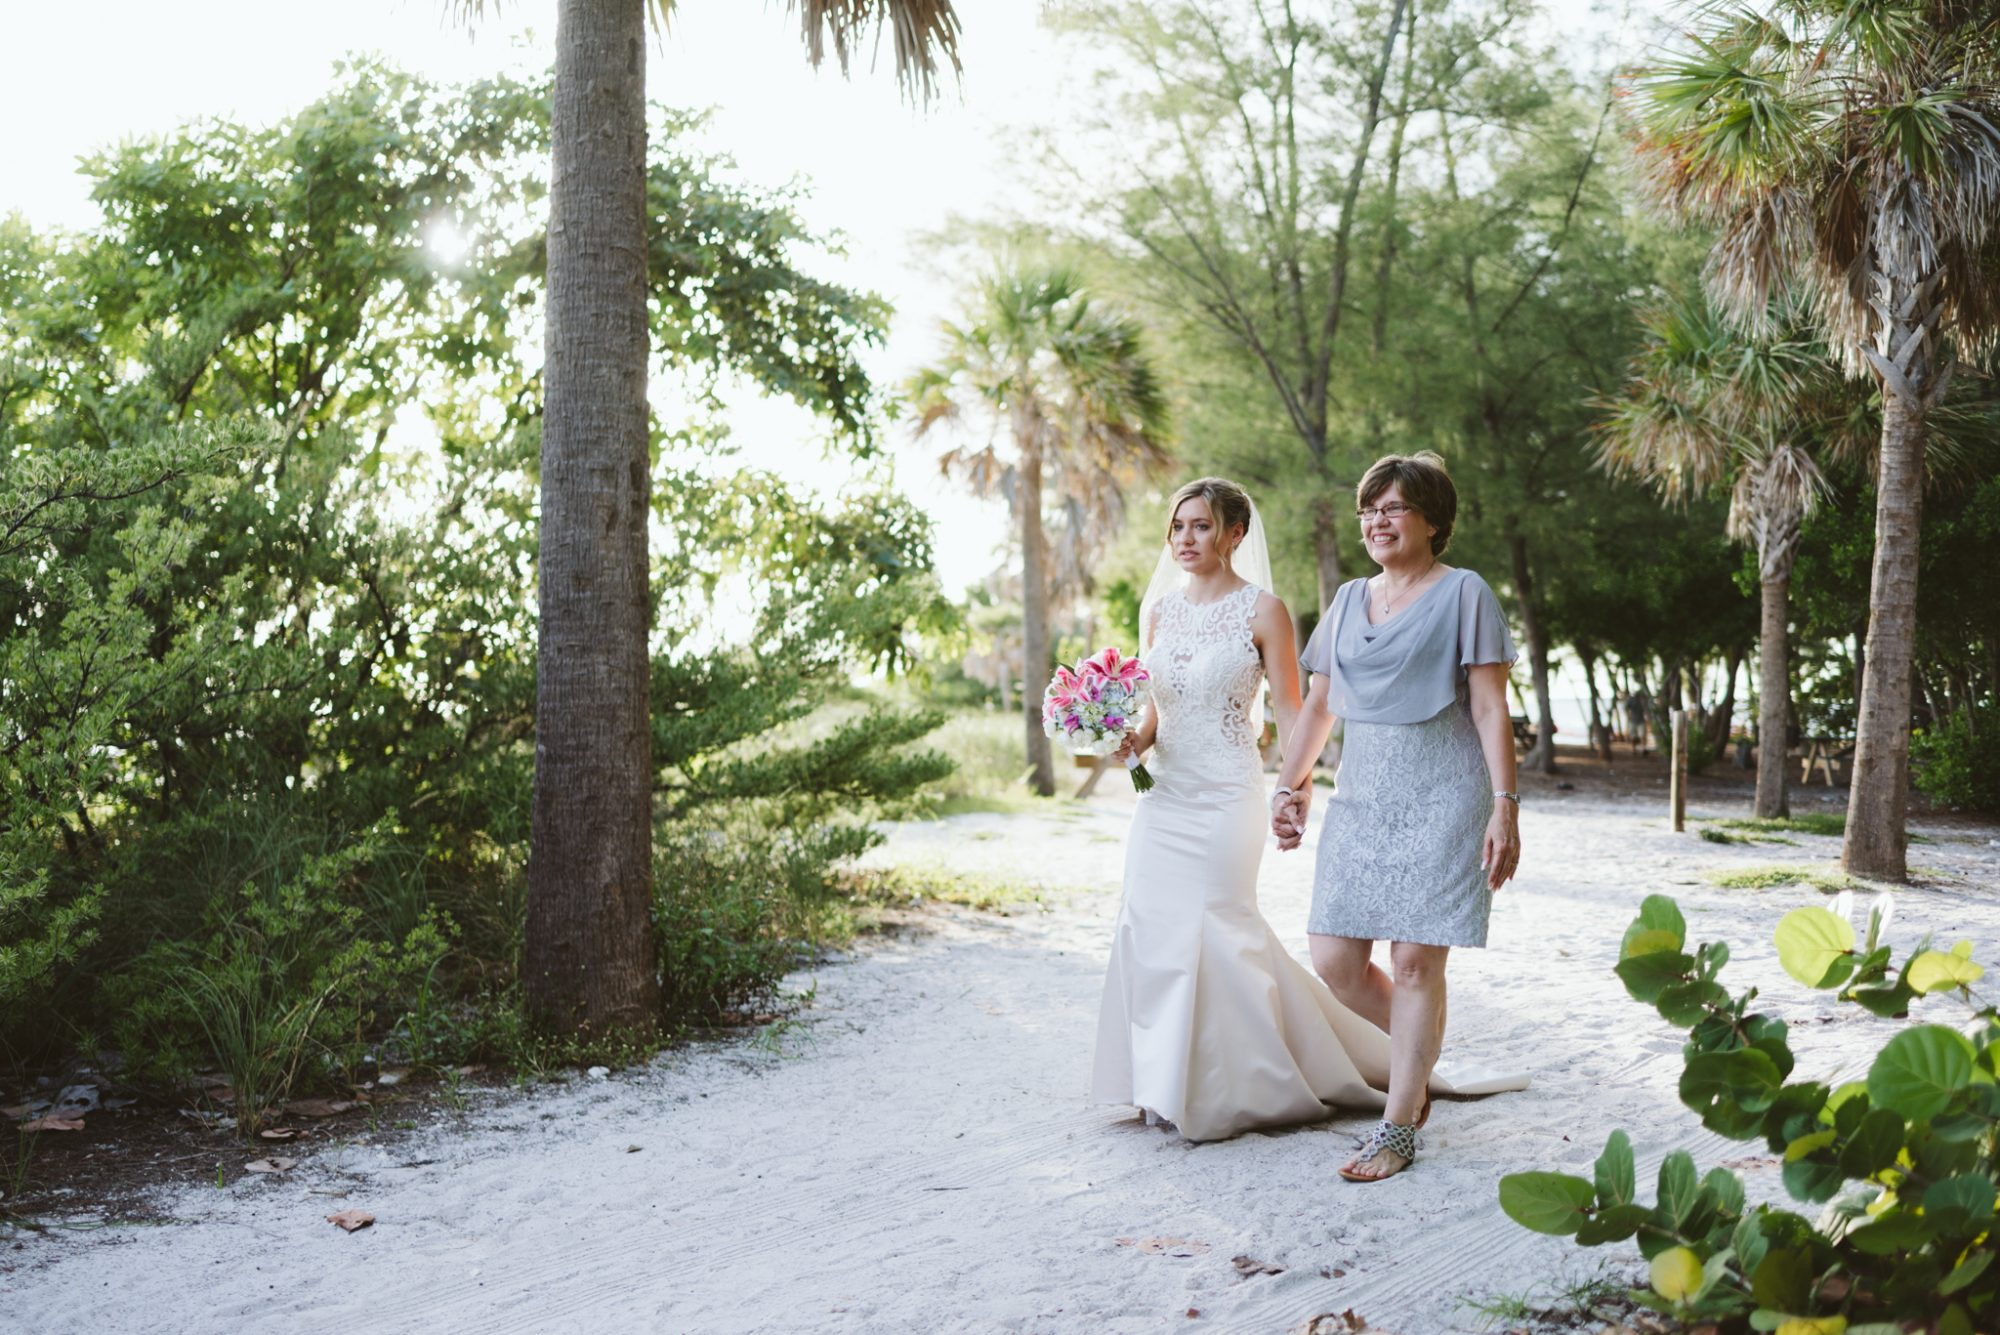 Fort Zachary Taylor Wedding28 - Kara & Ryan | Key West Wedding Photographer | Fort Zachary Taylor Wedding